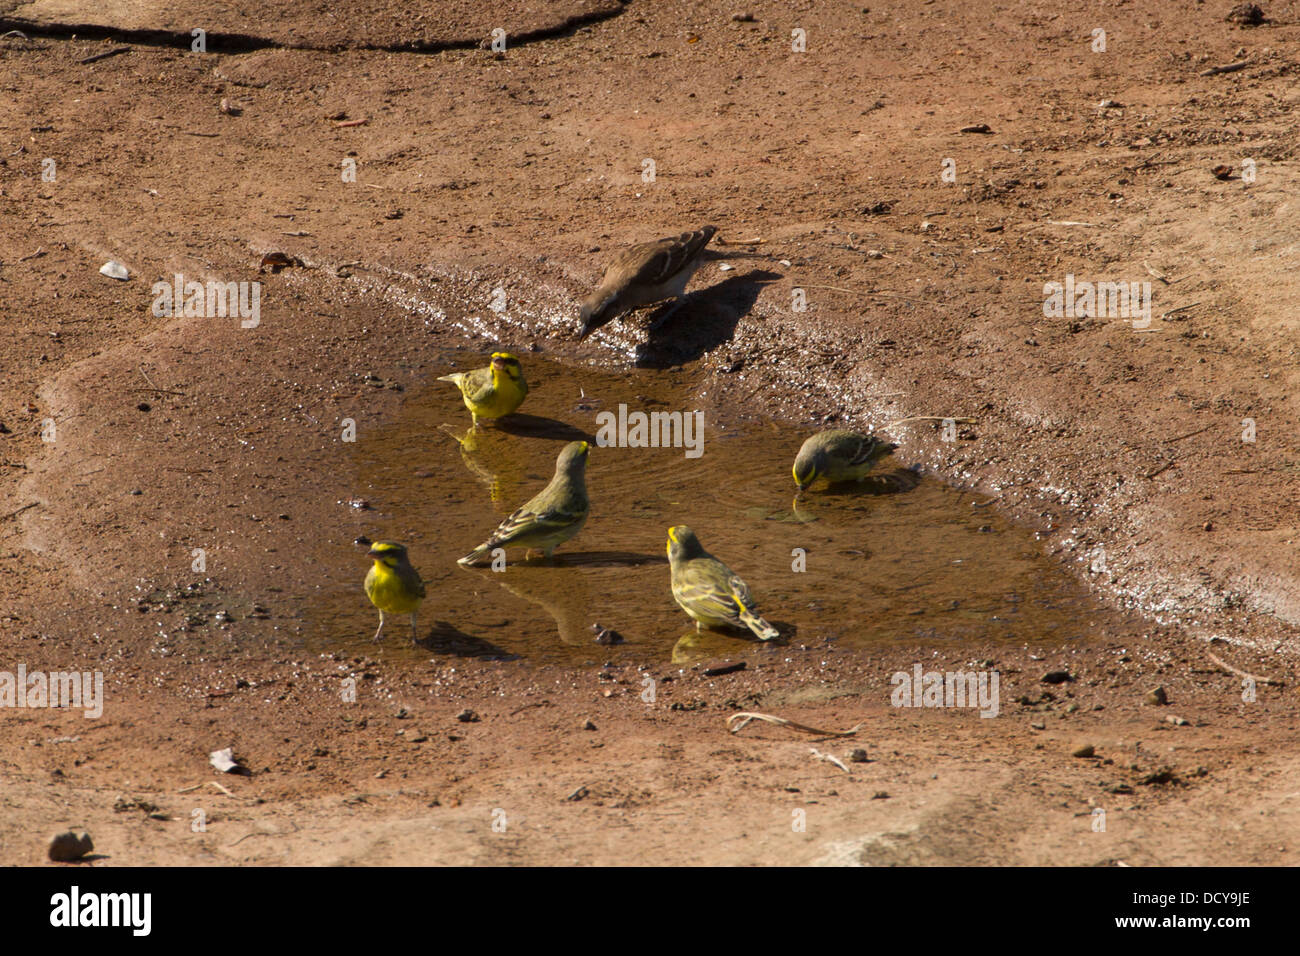 Small group of Cape Canary (Serinus canicollis) taking water-bath and drinking - Stock Image